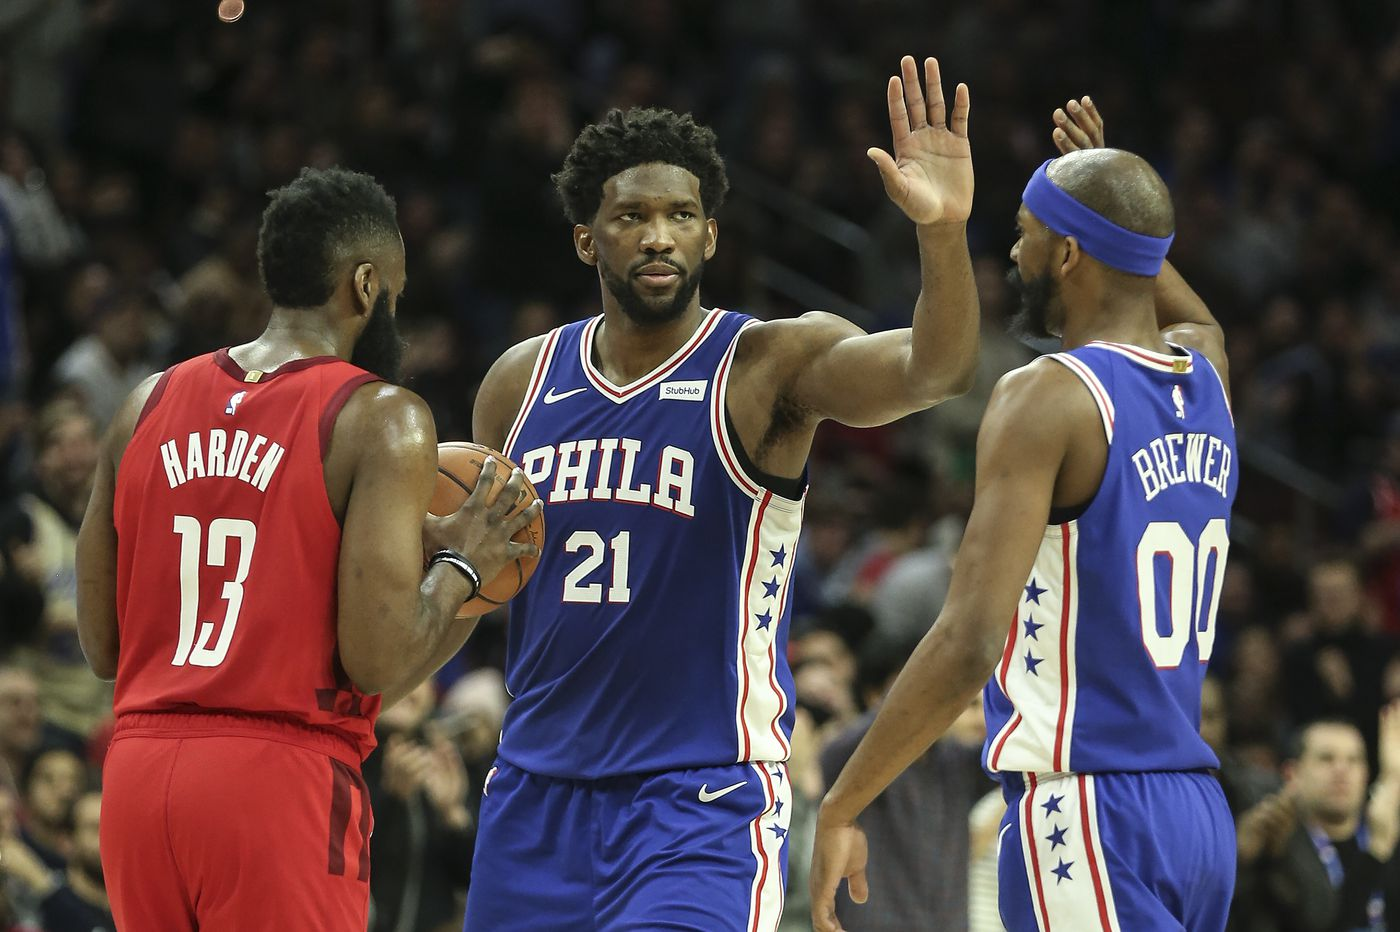 Joel Embiid, Corey Brewer lead Sixers in 121-93 rout of Rockets